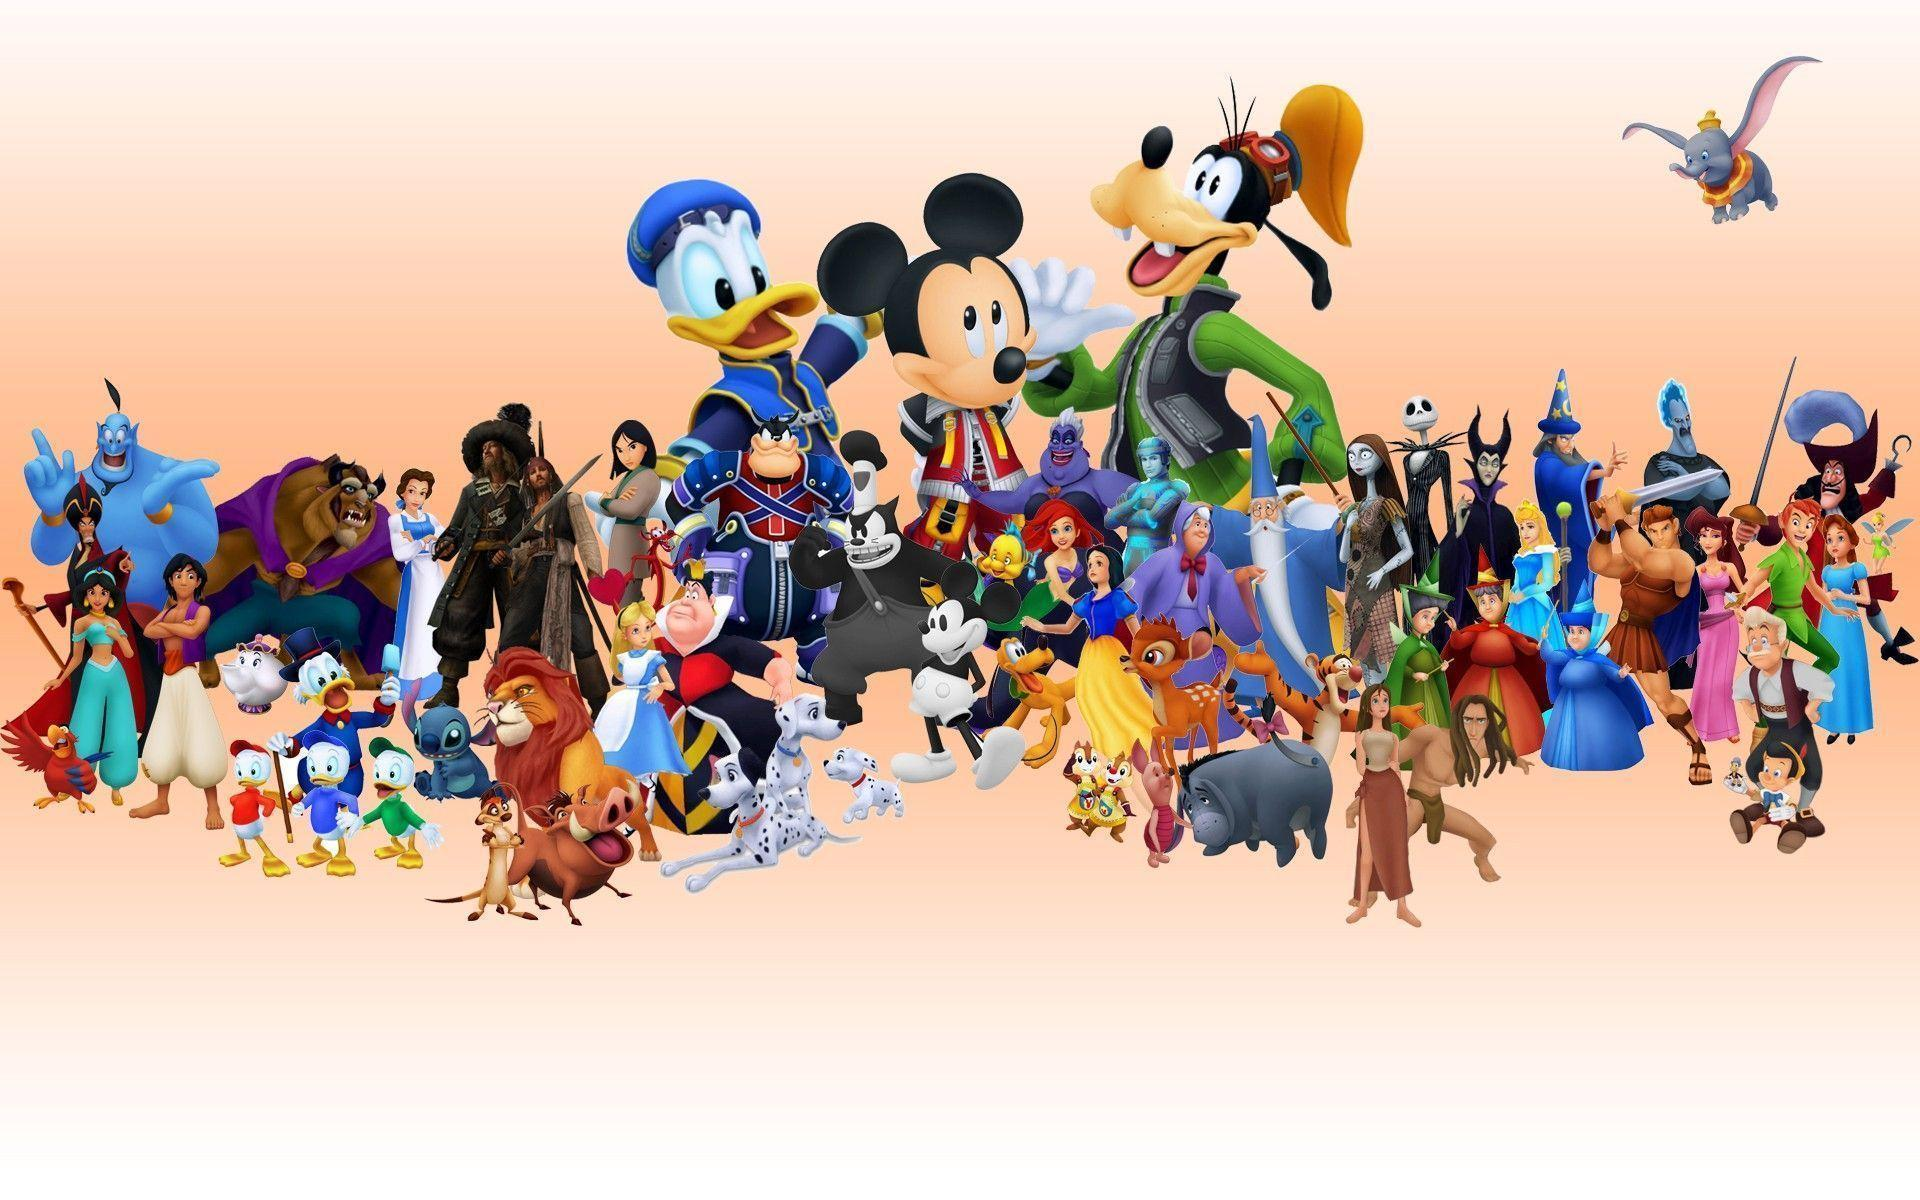 Disney Hd Wallpapers Wallpaper Cave